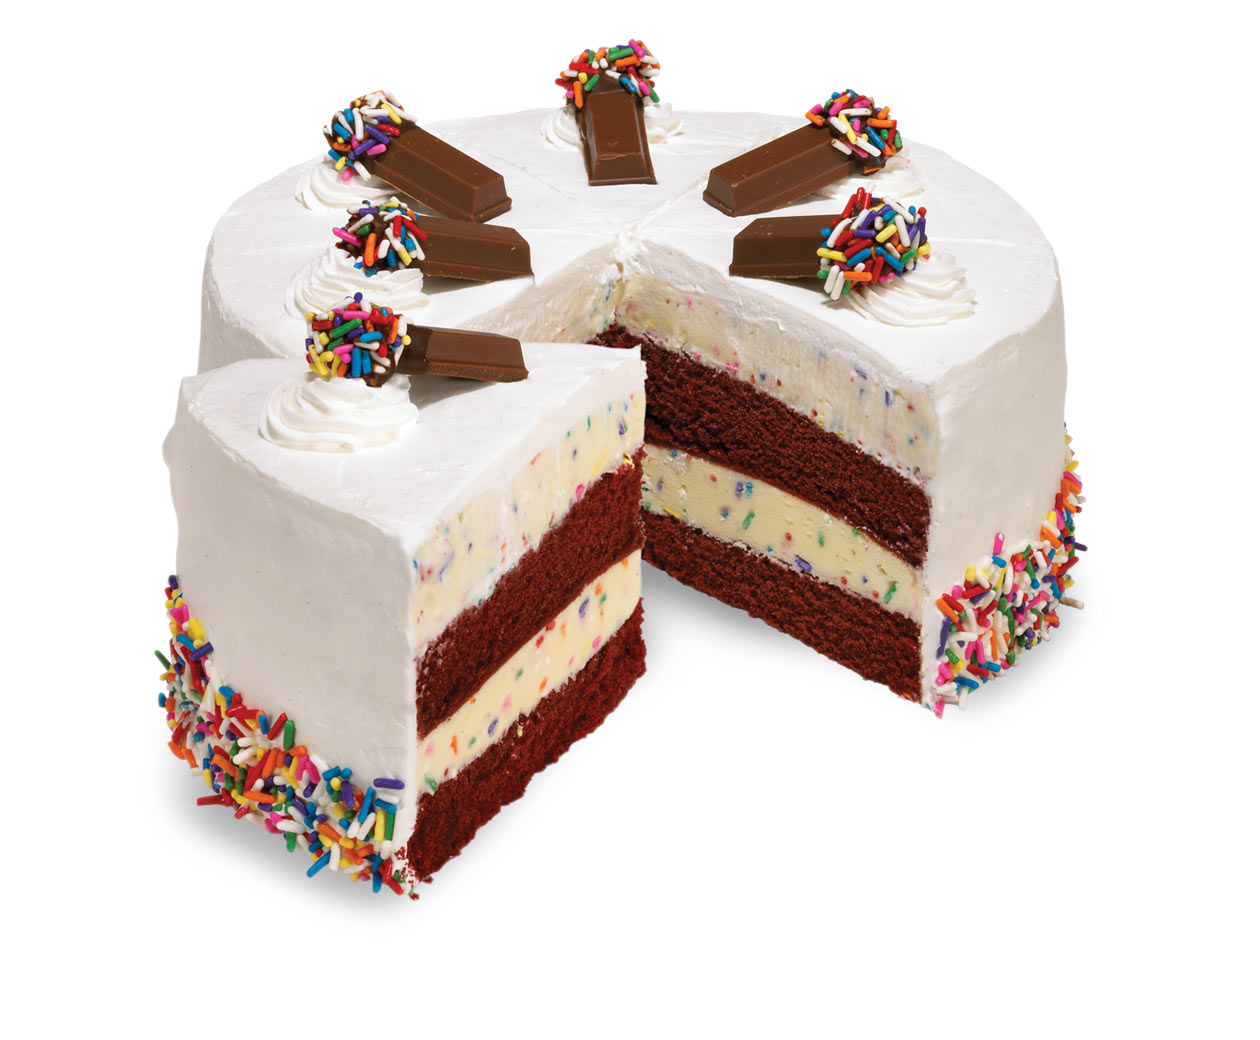 Cakes made with your favorite Ice Cream at Cold Stone Creamery.